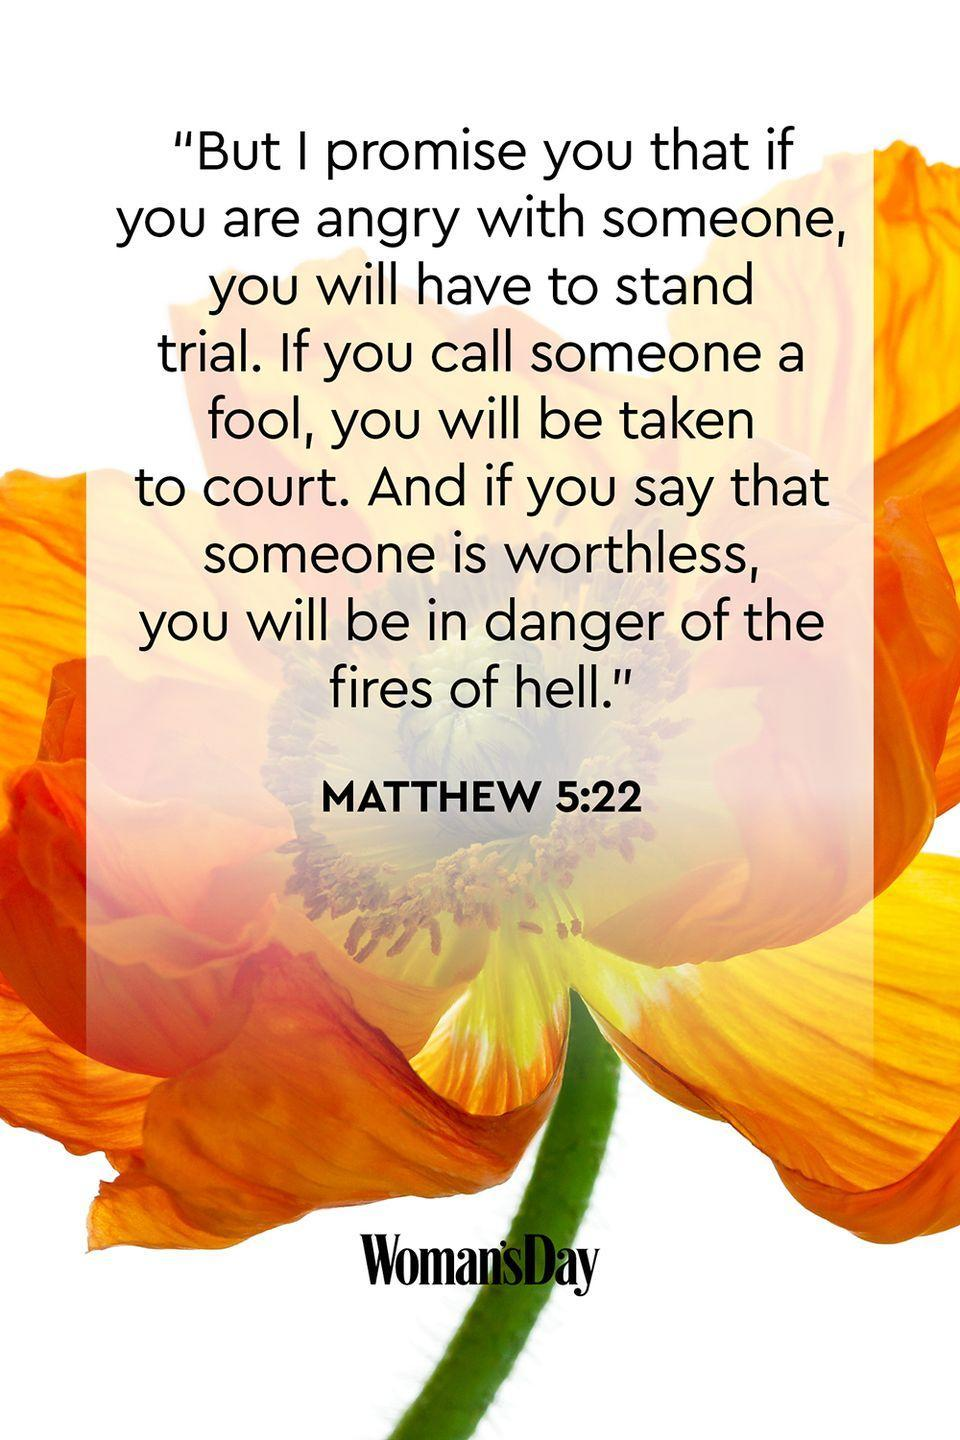 """<p>""""But I promise you that if you are angry with someone, you will have to stand trial. If you call someone a fool, you will be taken to court. And if you say that someone is worthless, you will be in danger of the fires of hell.""""</p><p><strong>The Good News</strong>: All actions have consequences, especially if you act out of anger and pettiness. </p>"""